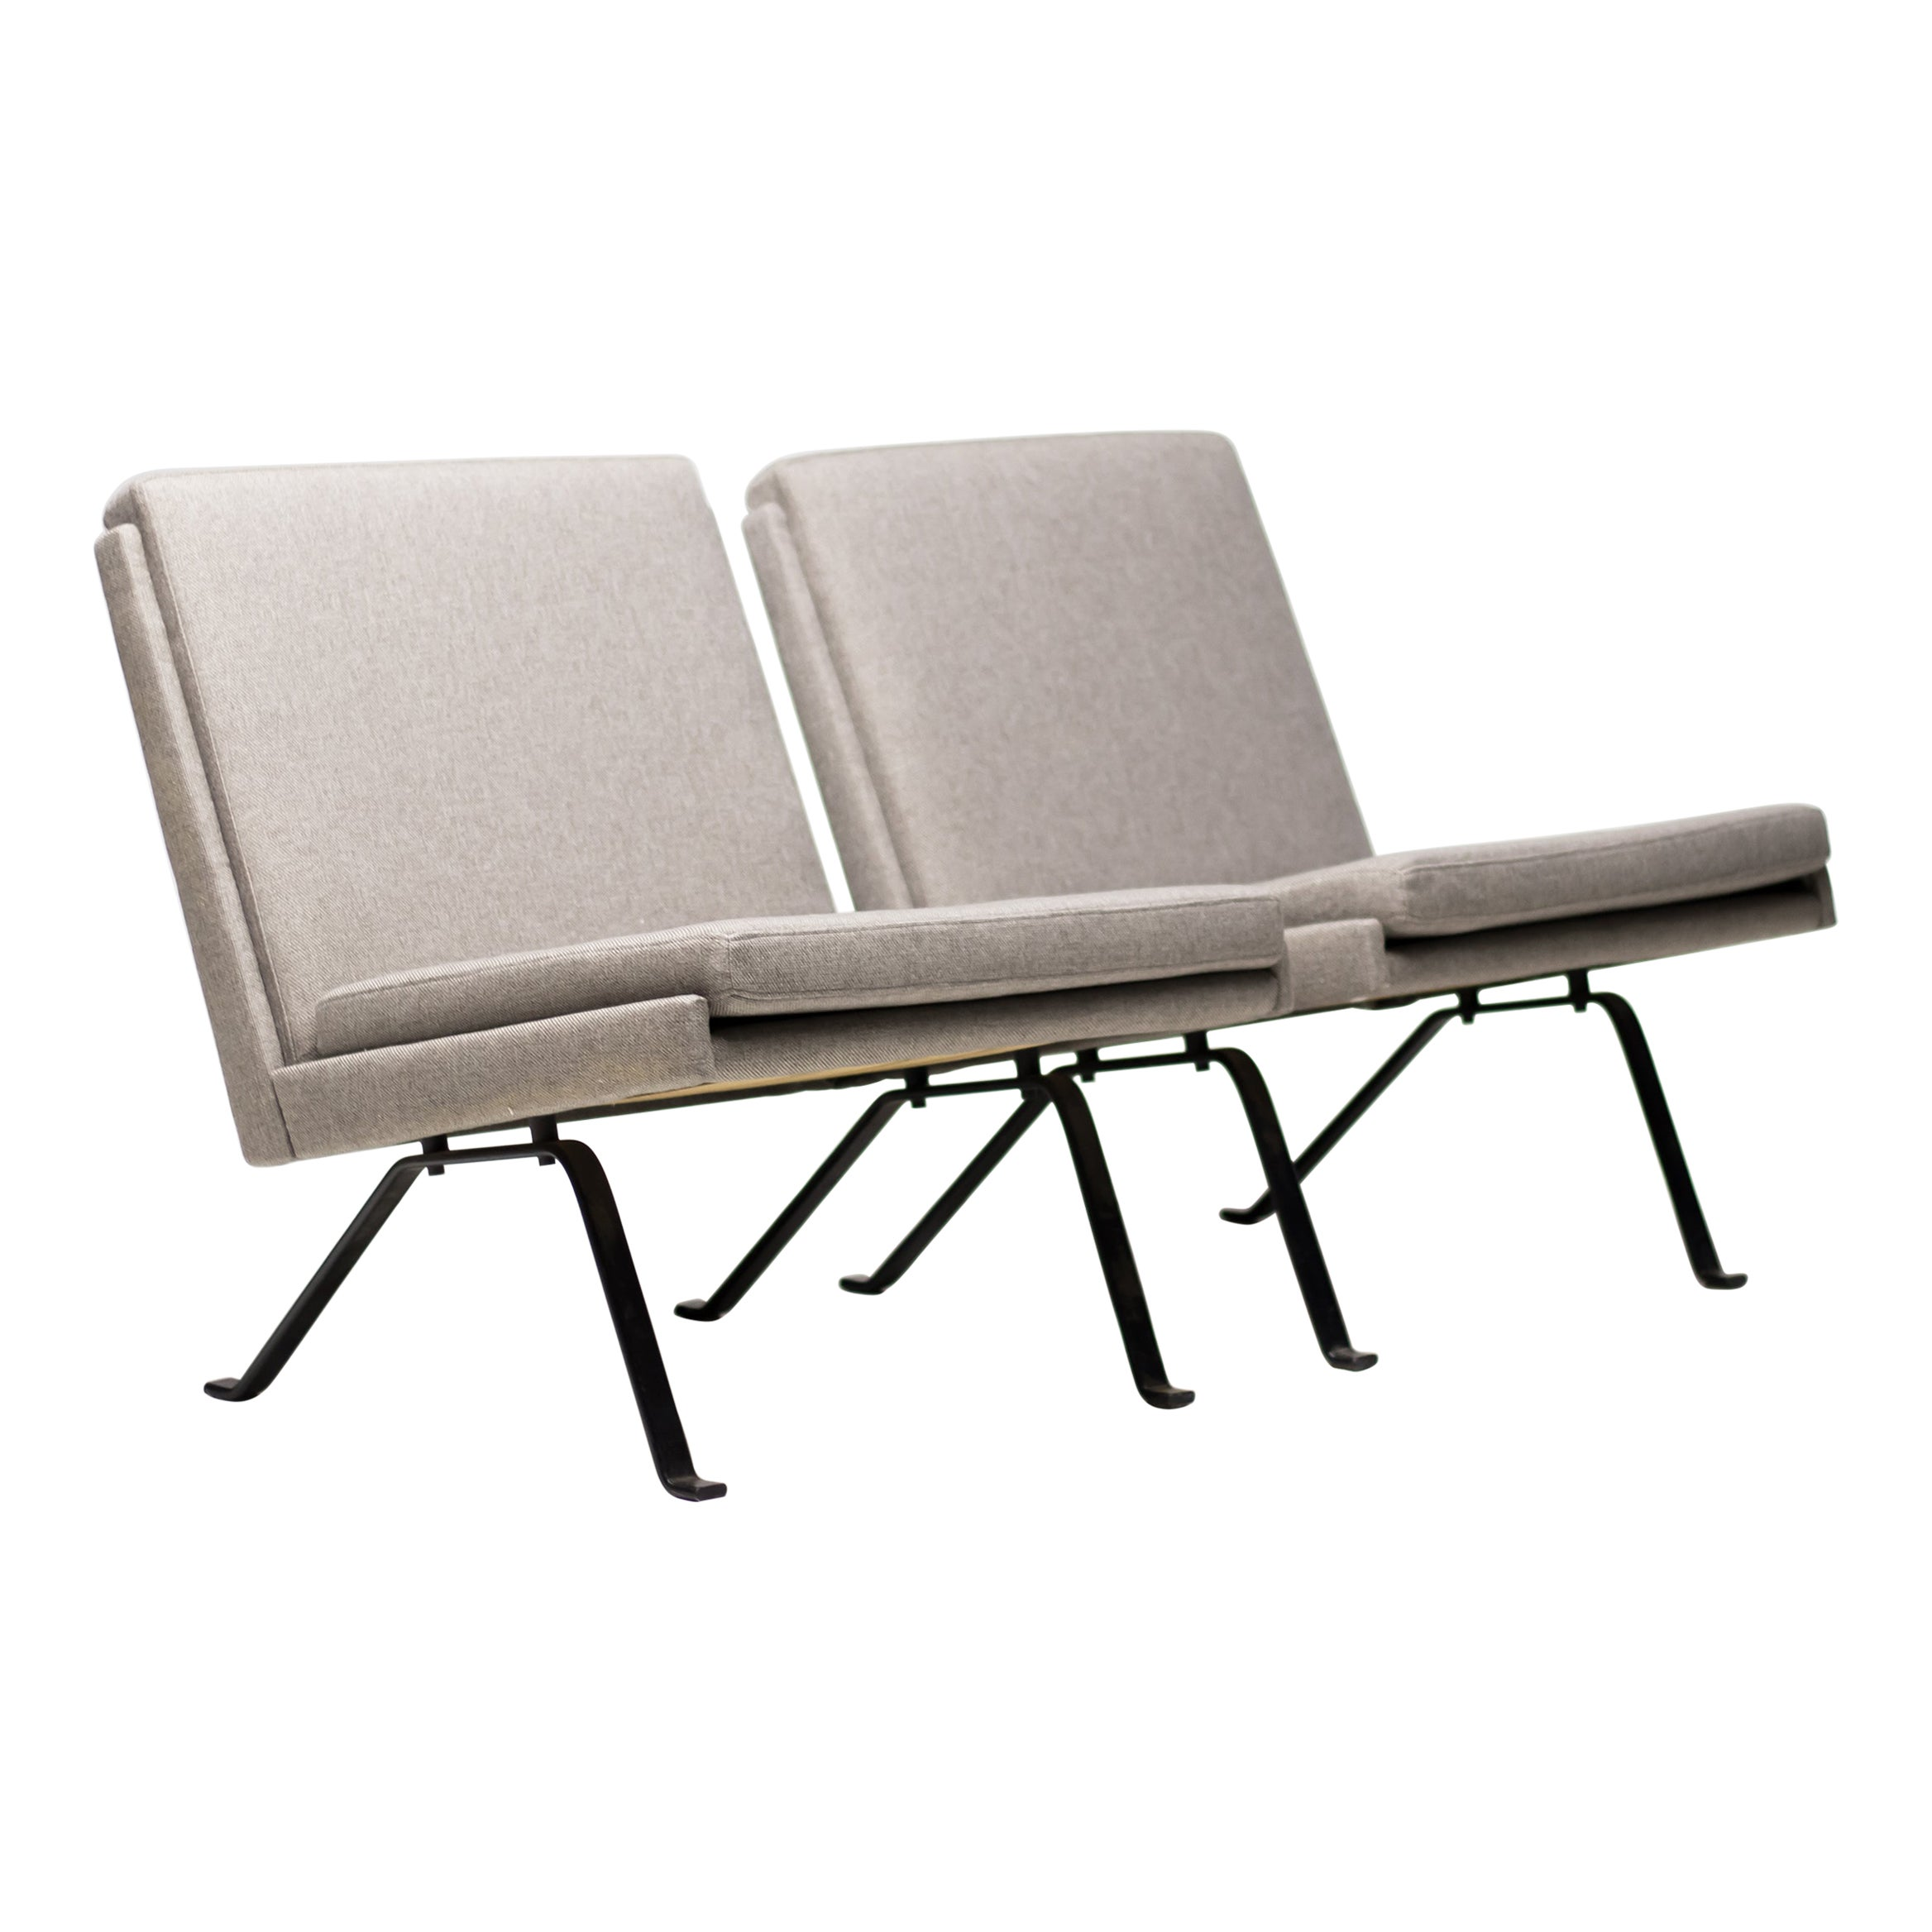 Scandinavian Architectural Lounge Chairs